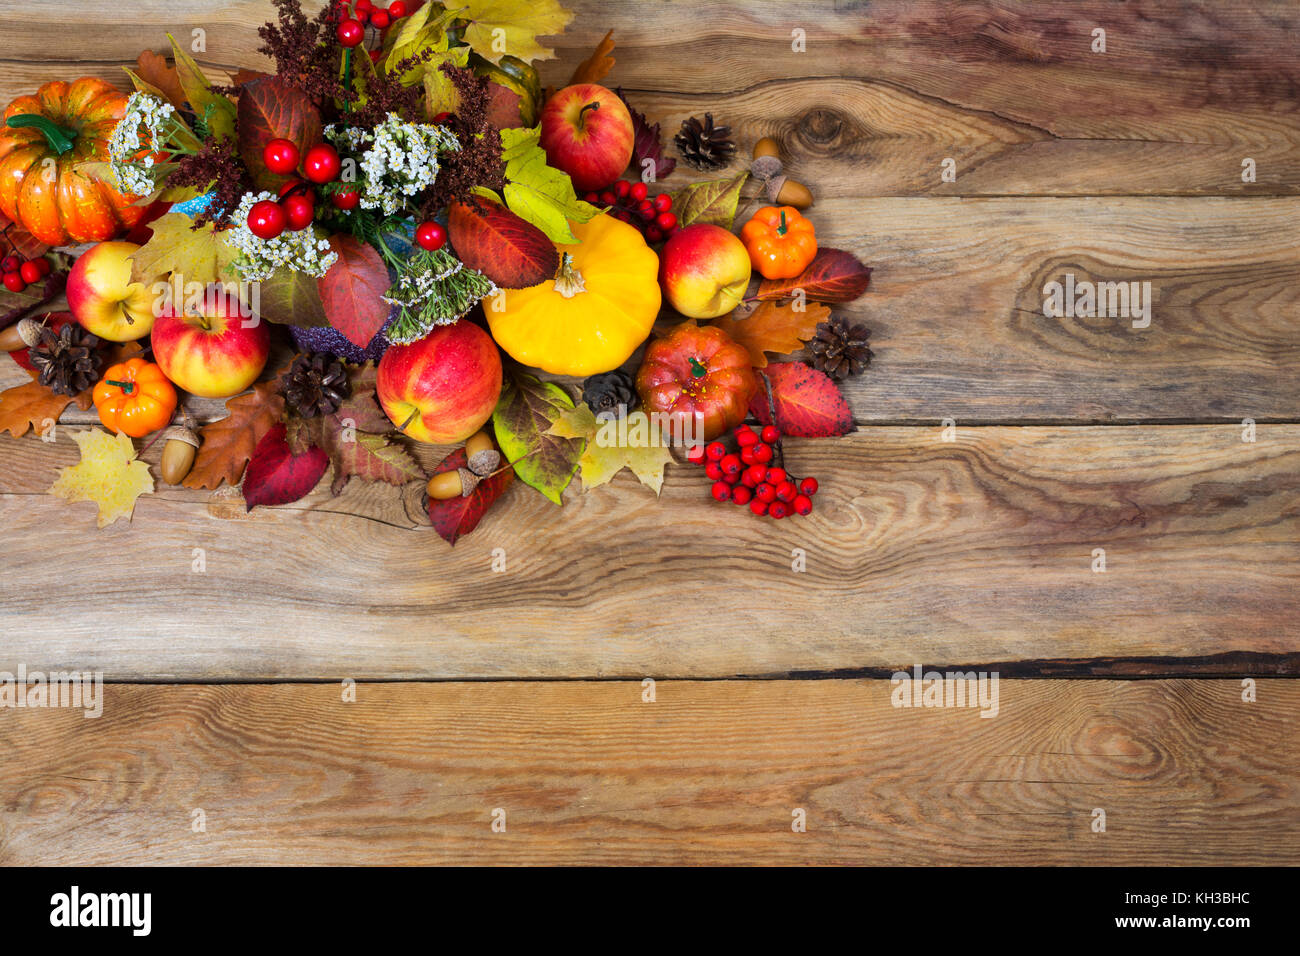 Fall Rustic Background With Red Berries White Flowers Yellow Squash Apples Cones Acorns Colorful Leaves Copy Space